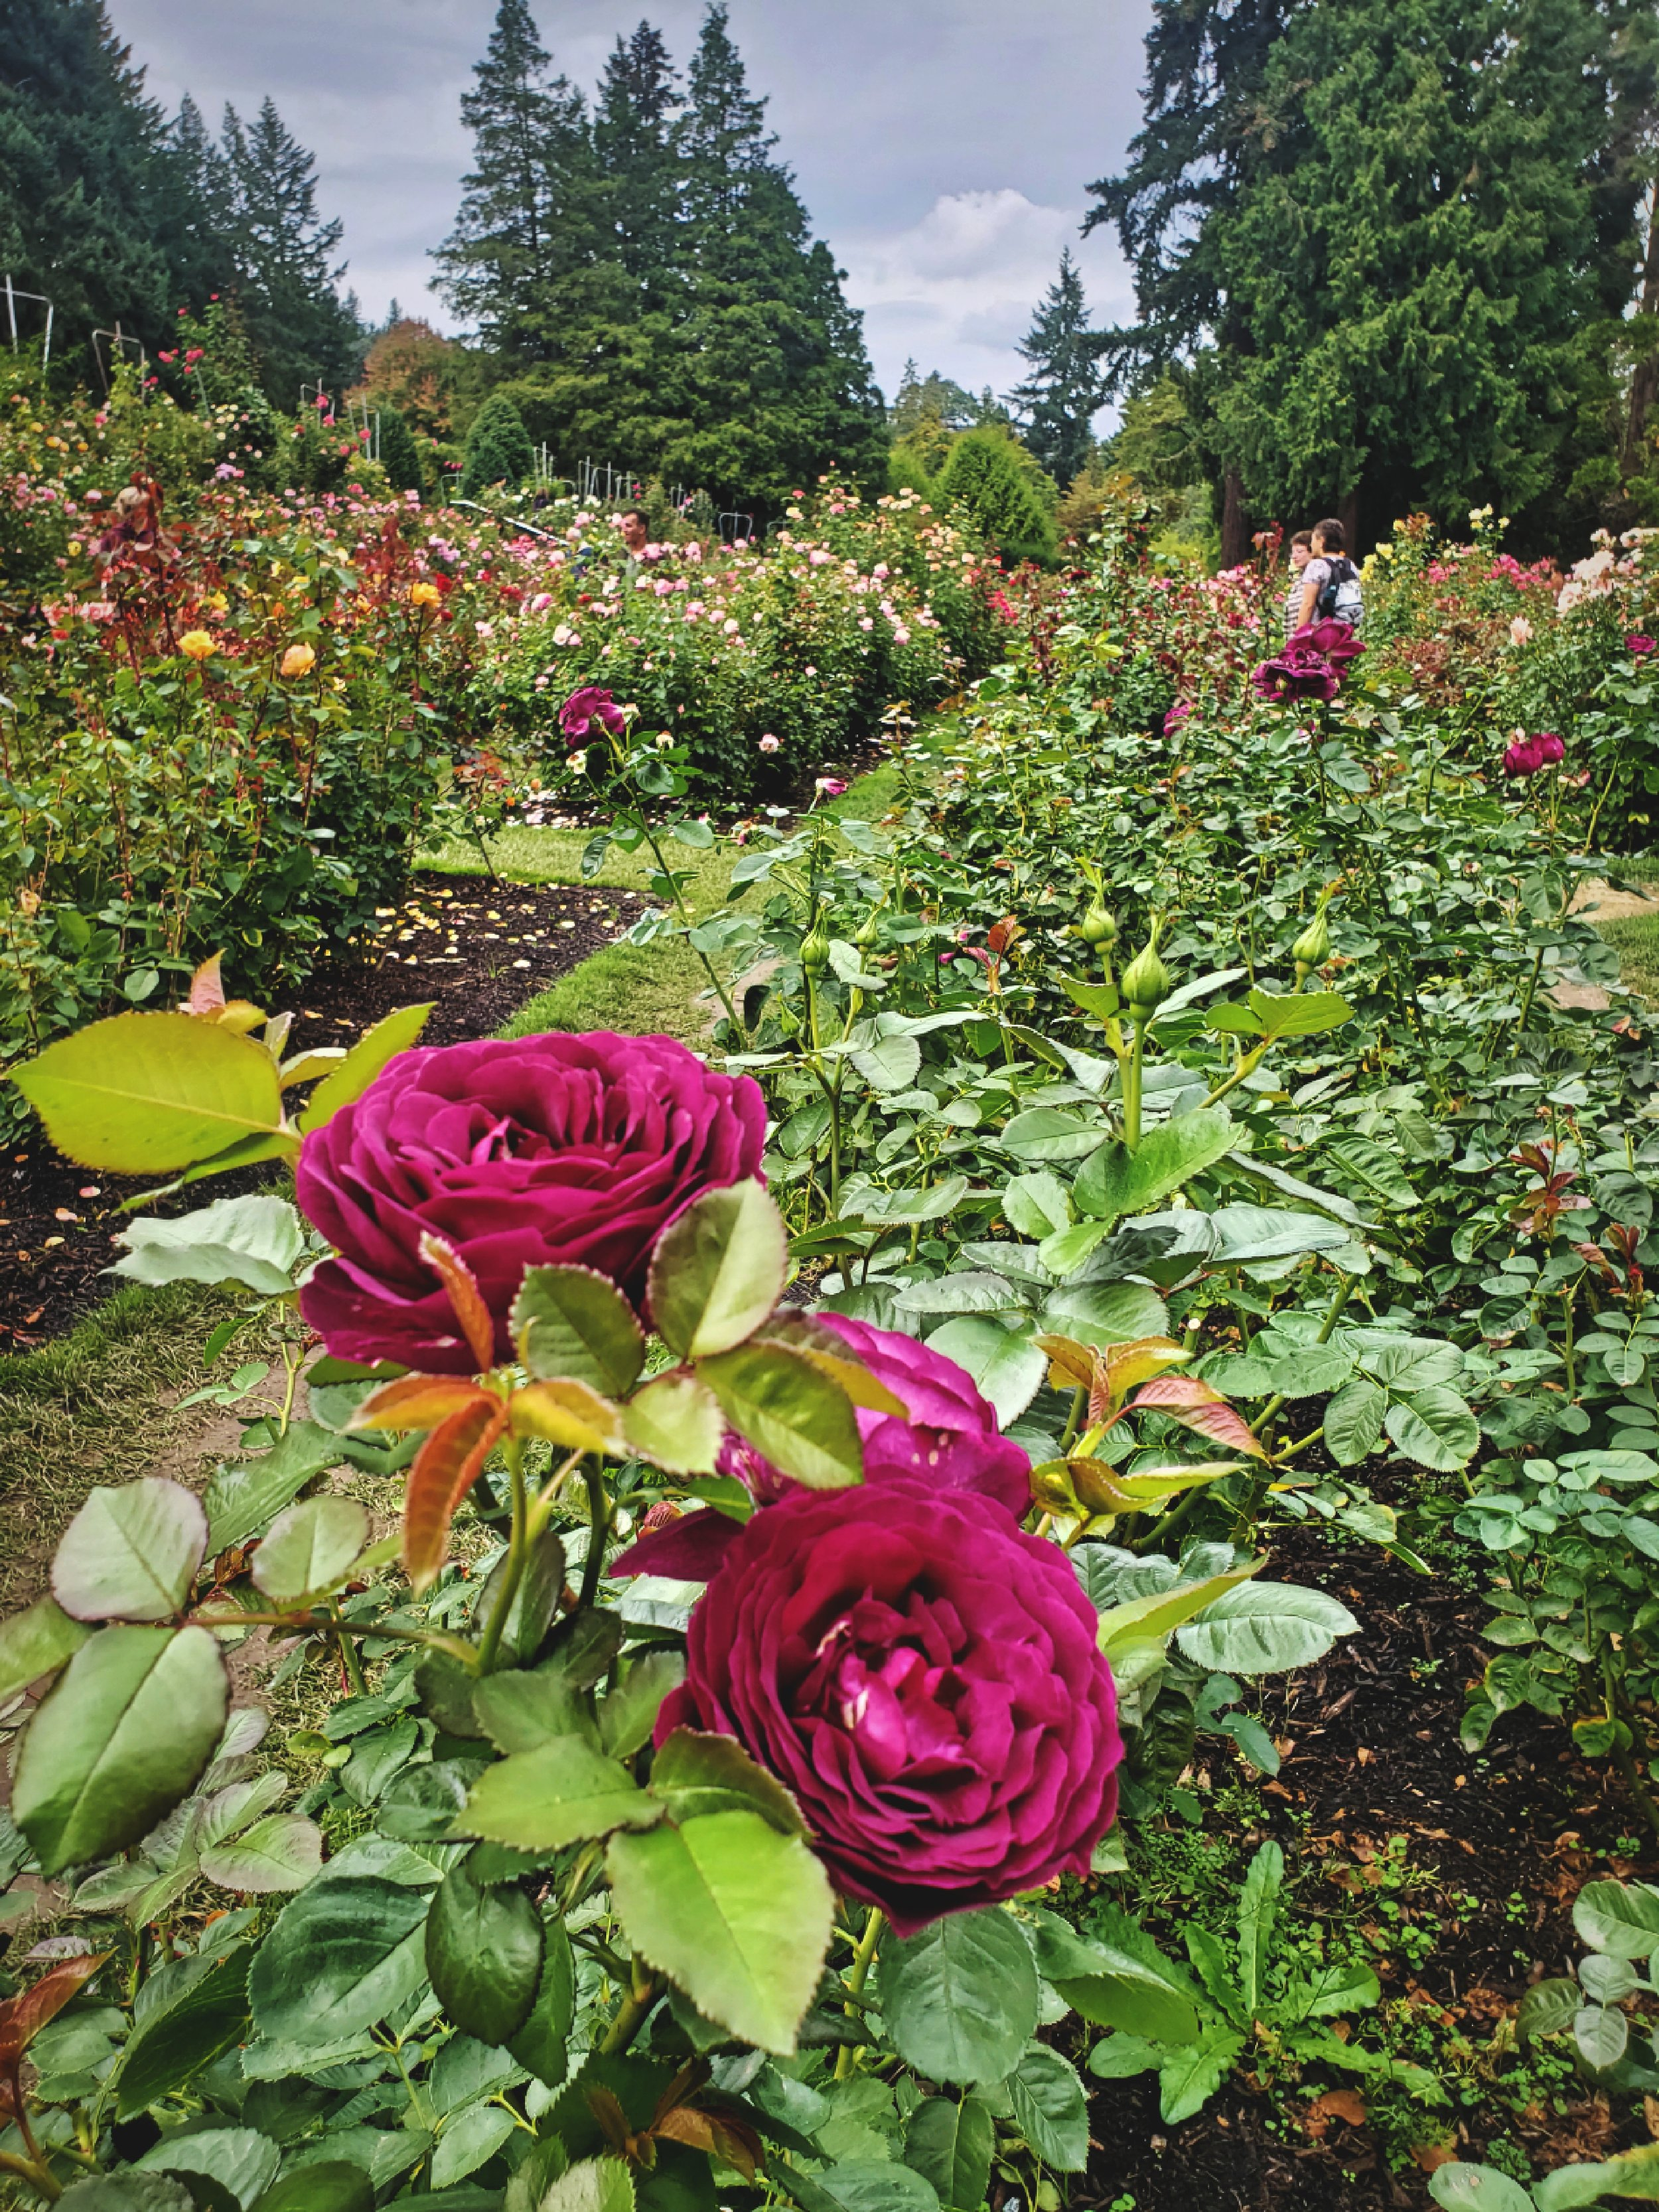 Stopping To Smell The Roses At The International Rose Test Garden